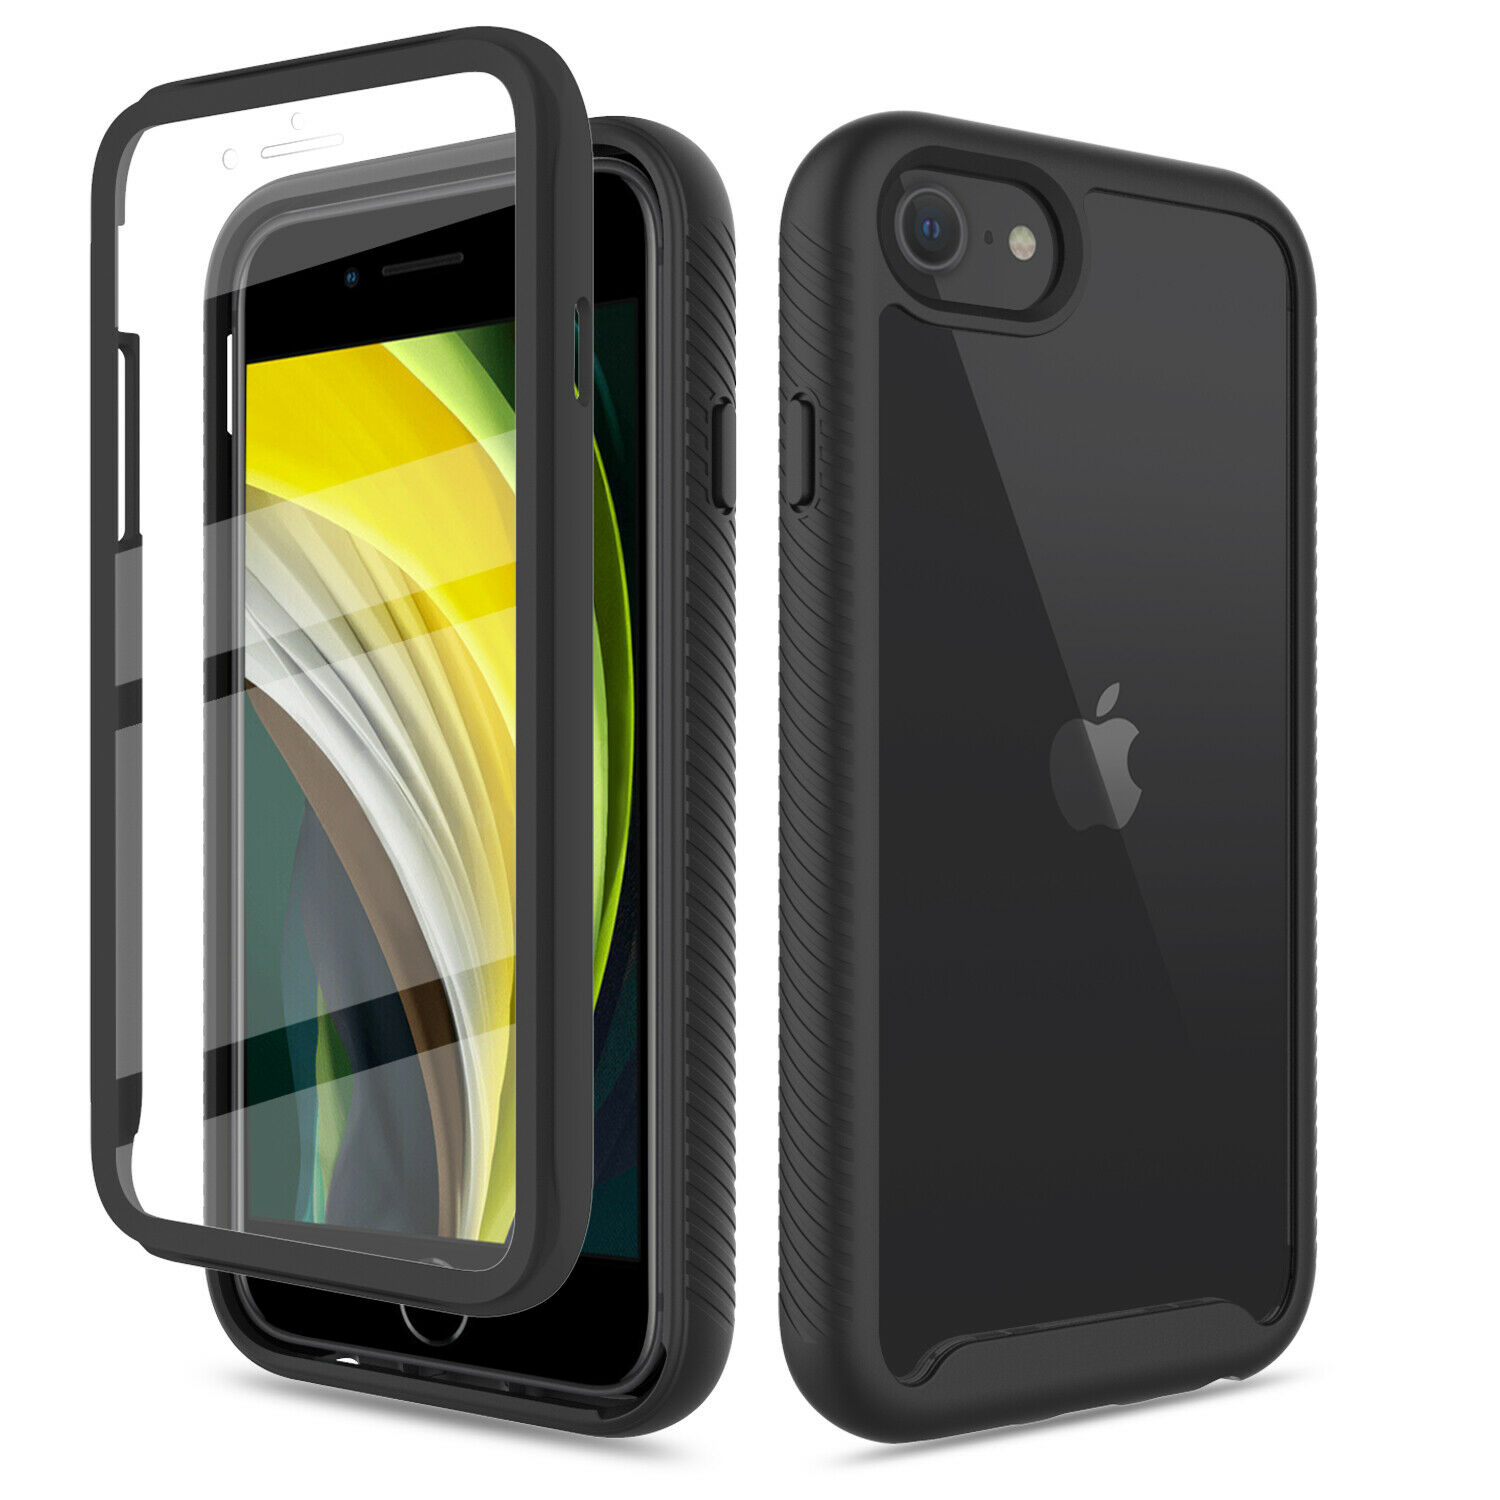 For iPhone SE (2020)/7/8 Hybrid Case Clear Cover With Built-in Screen Protector Cases, Covers & Skins